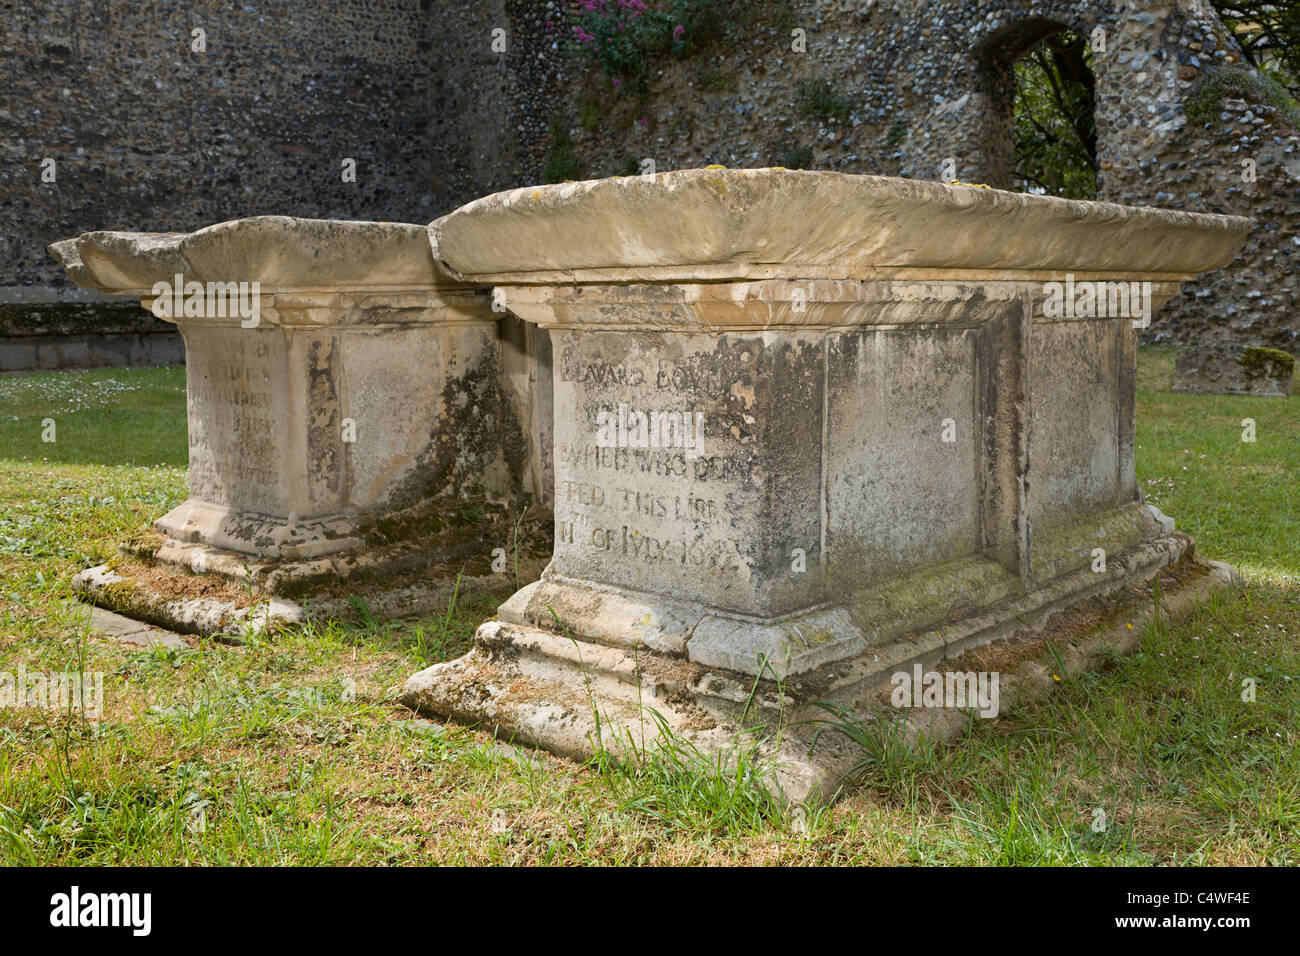 Two 17thC sarcophagus' in the cemetery of St Edmundsbury Cathedral, Bury St Edmunds, Suffolk, England, UK. - Stock Image